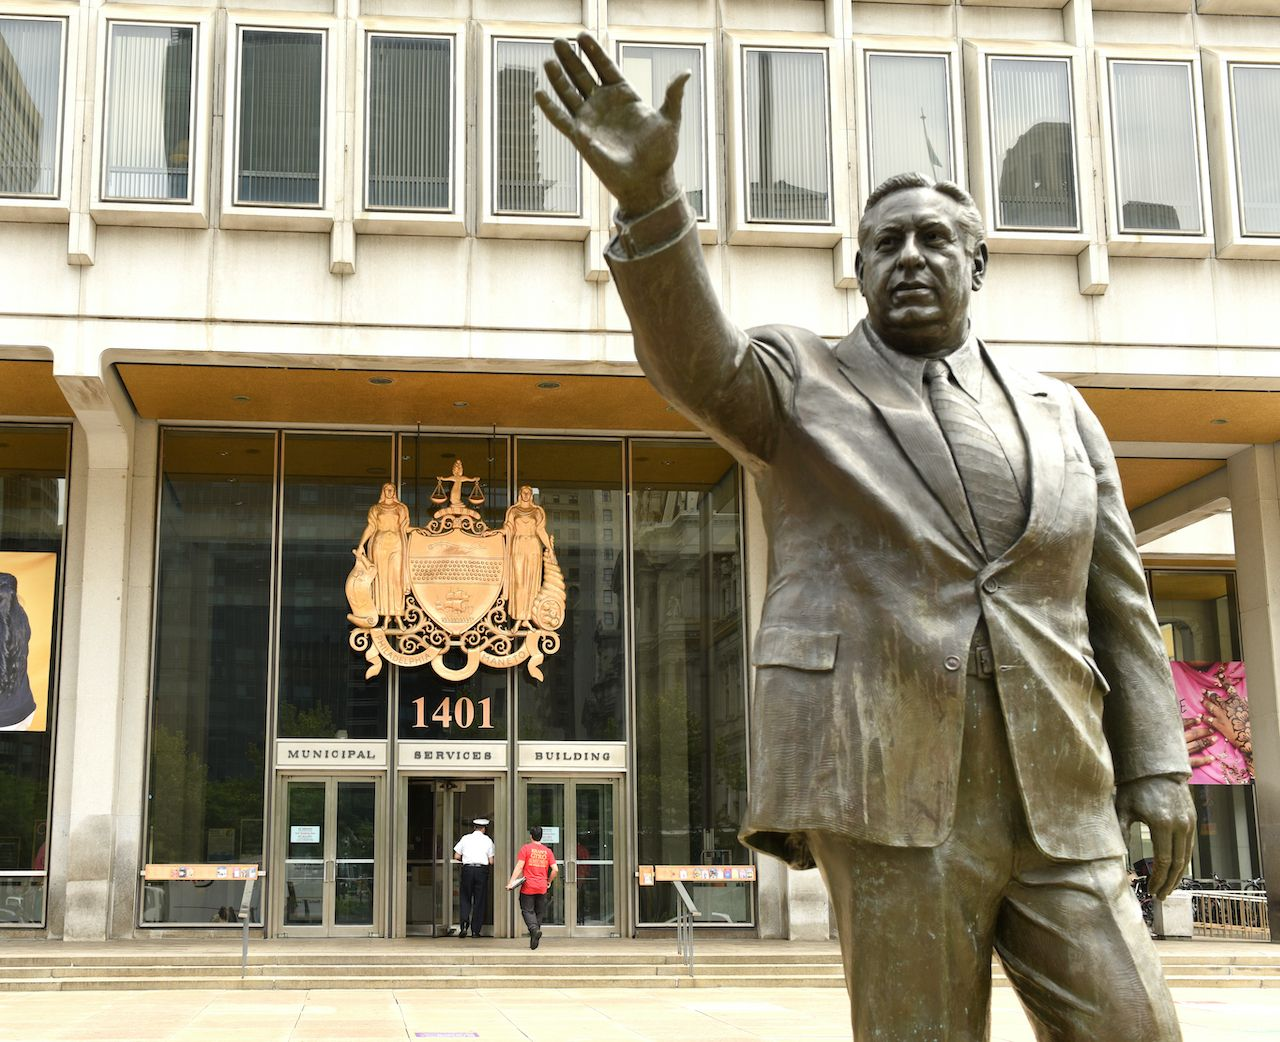 Frank L. Rizzo Monument near the Philadelphia Municipal Services Building